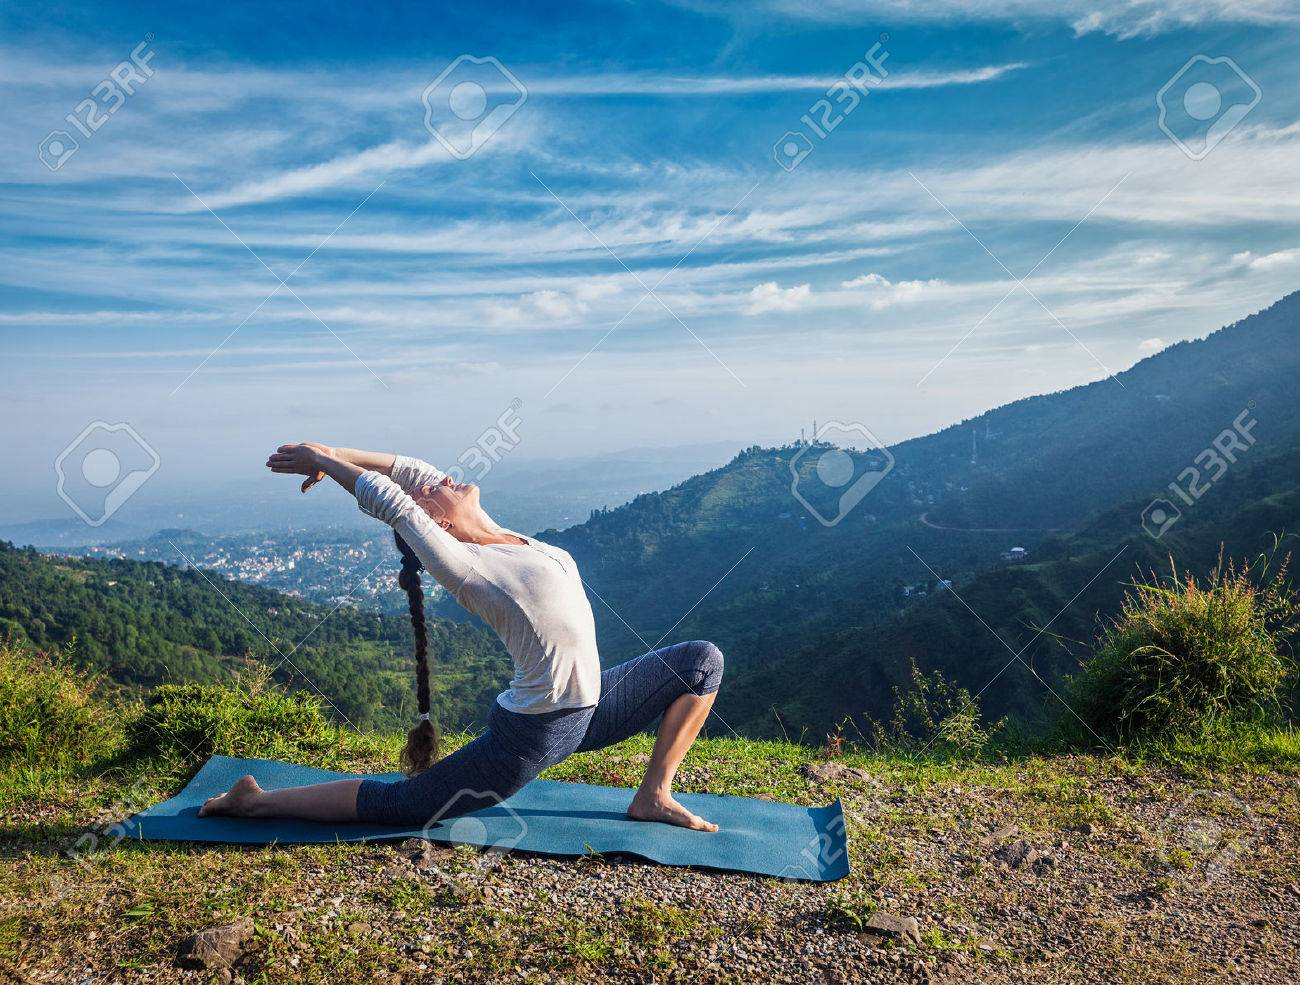 Sporty fit woman practices yoga Anjaneyasana - low crescent lunge pose outdoors in mountains in morning - 48366876